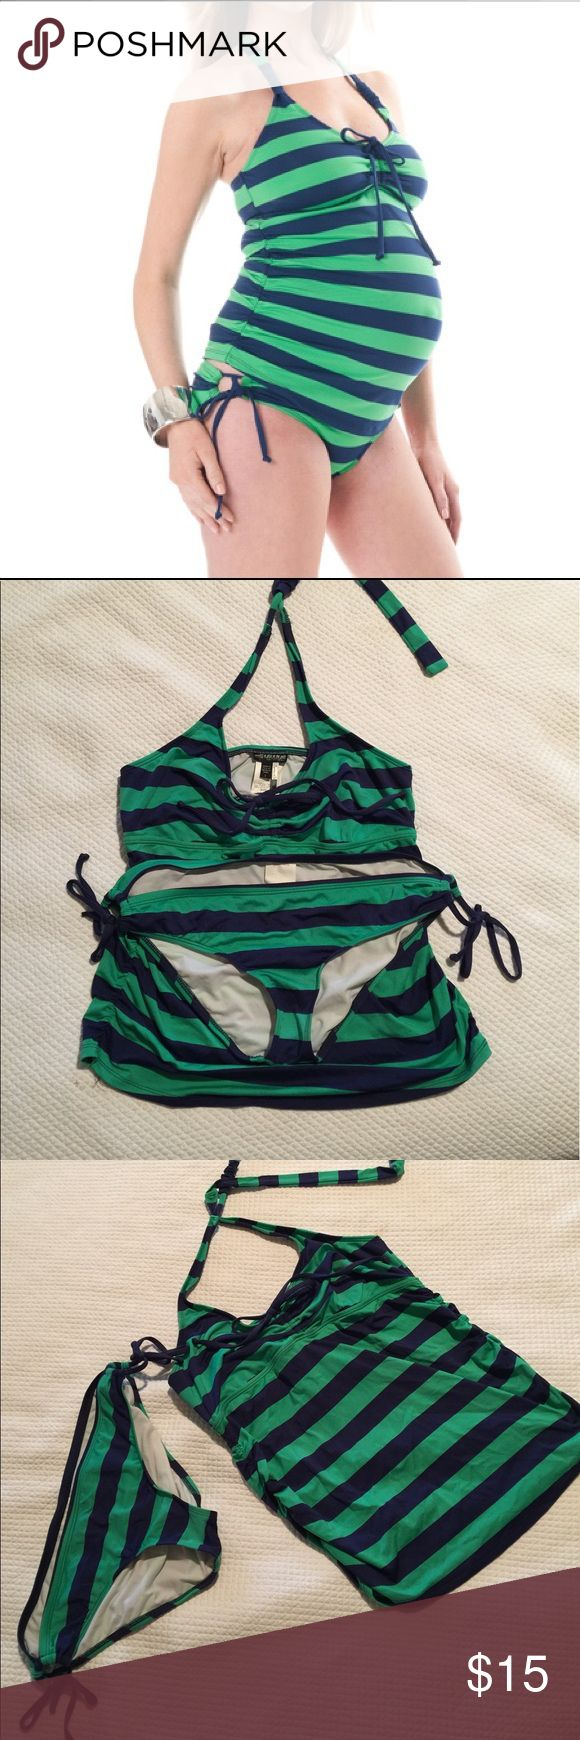 Maternity Two piece Ruched sides swimsuit. Preppy green and navy blue striped two piece maternity swim suit with halter top tie  from Splendid and Pea in the Pod Collection.  Worn only twice and in normal used condition. A Pea in the Pod Swim